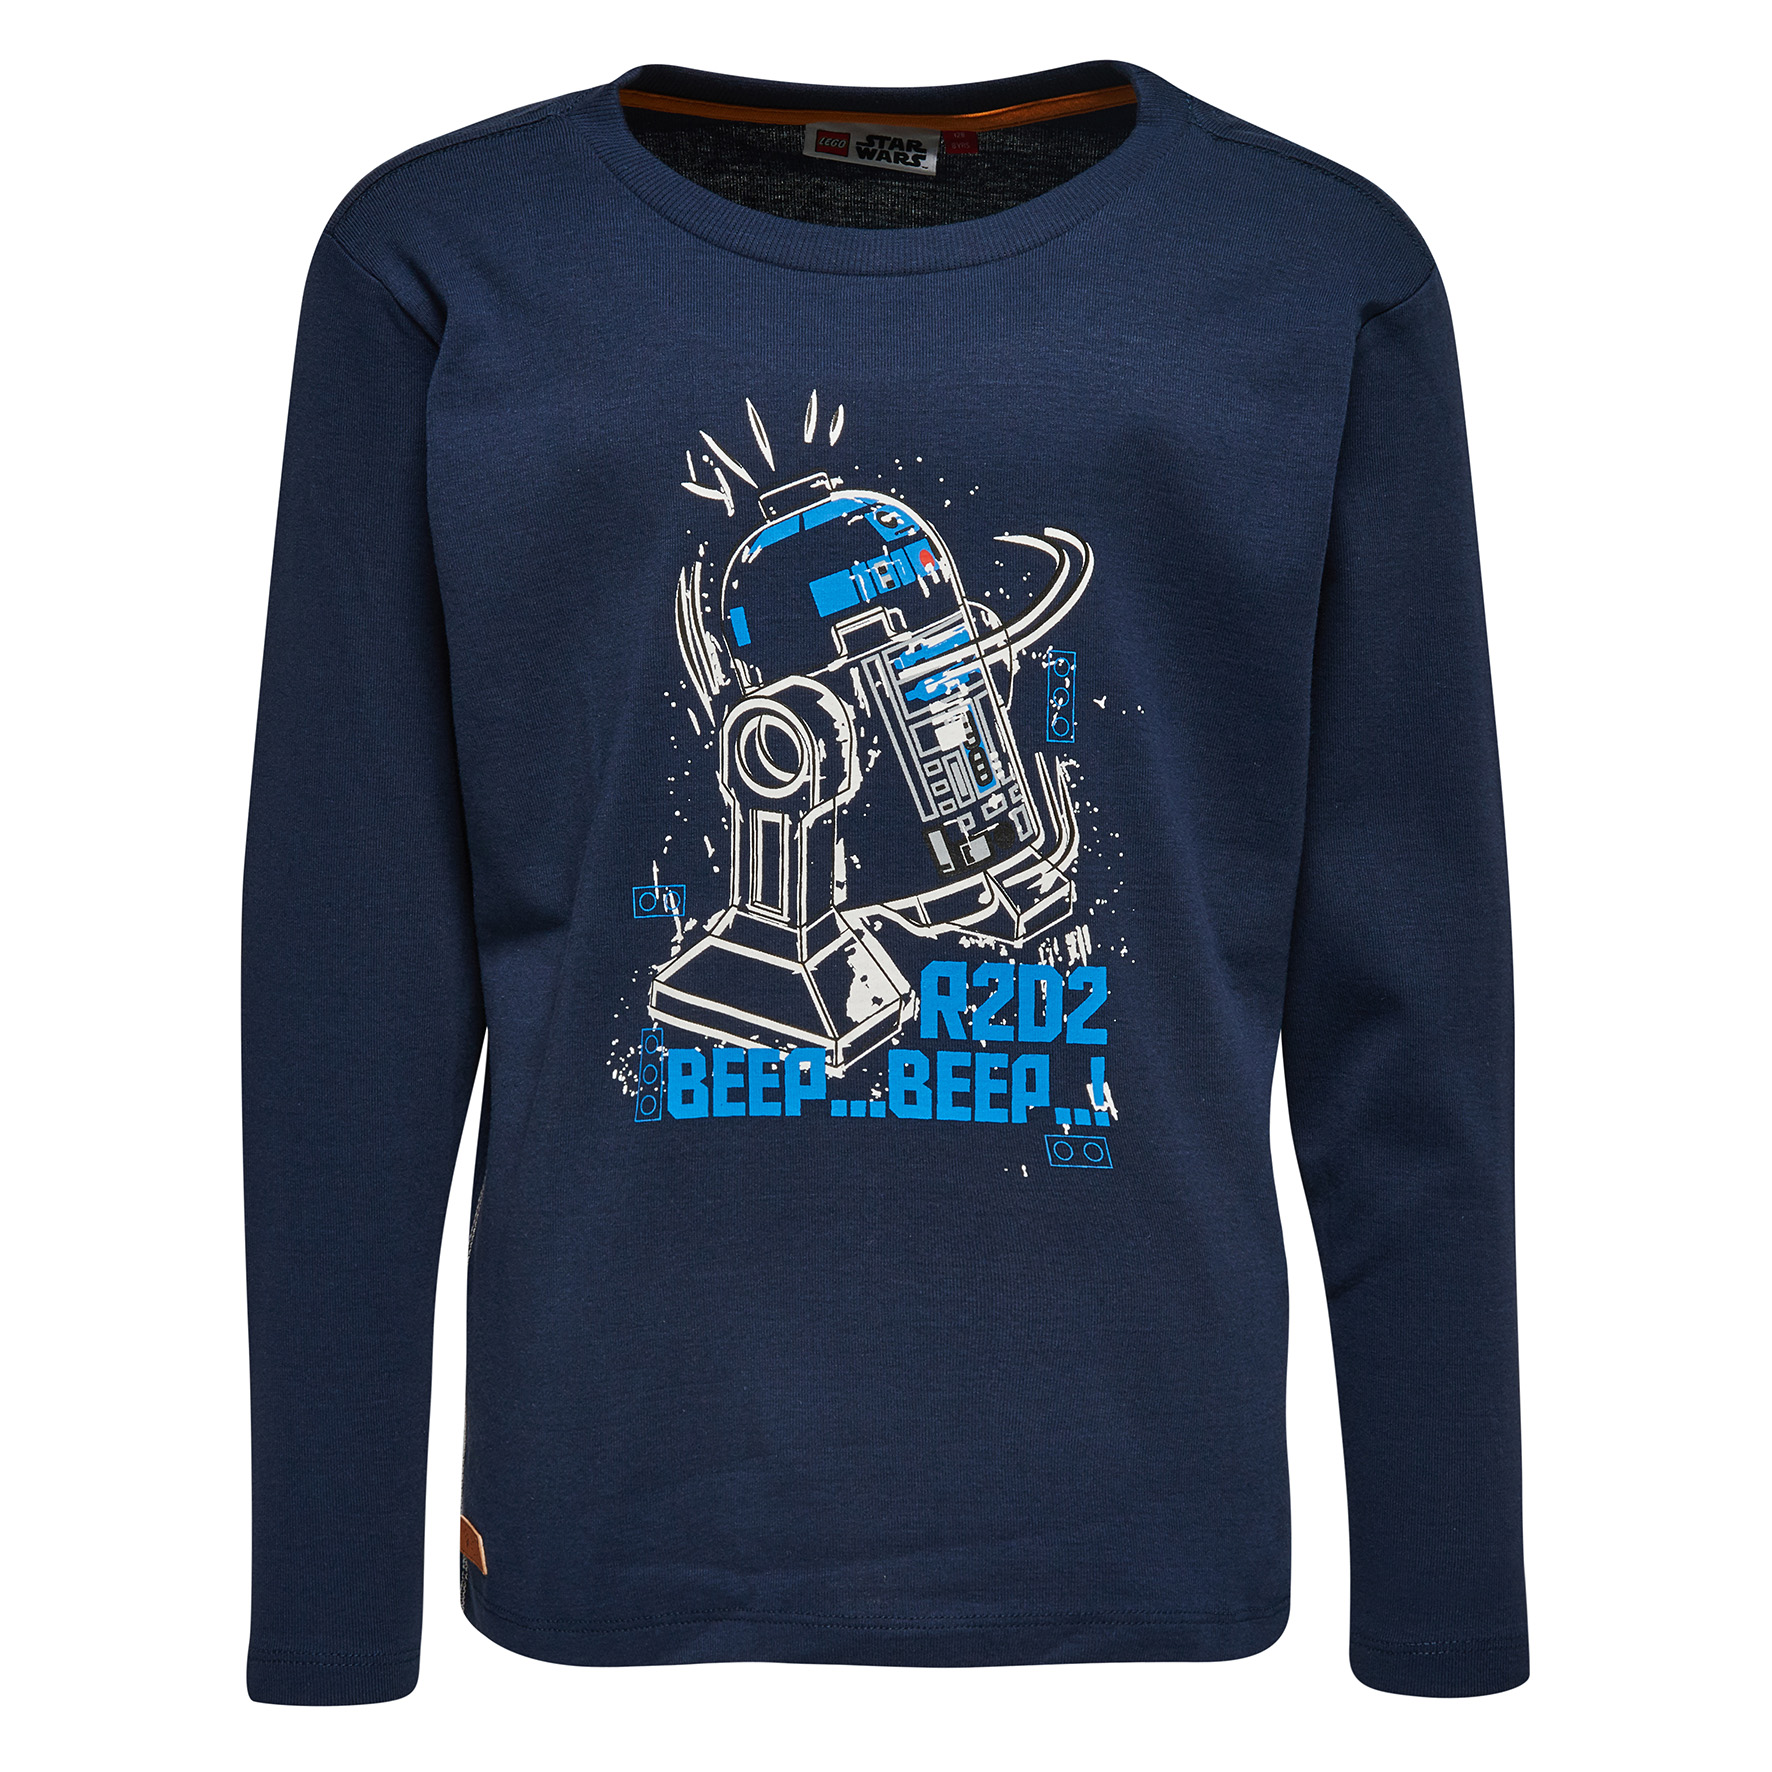 065c84f11fa Longsleeve Lego Wear dark navy - Kid-Store